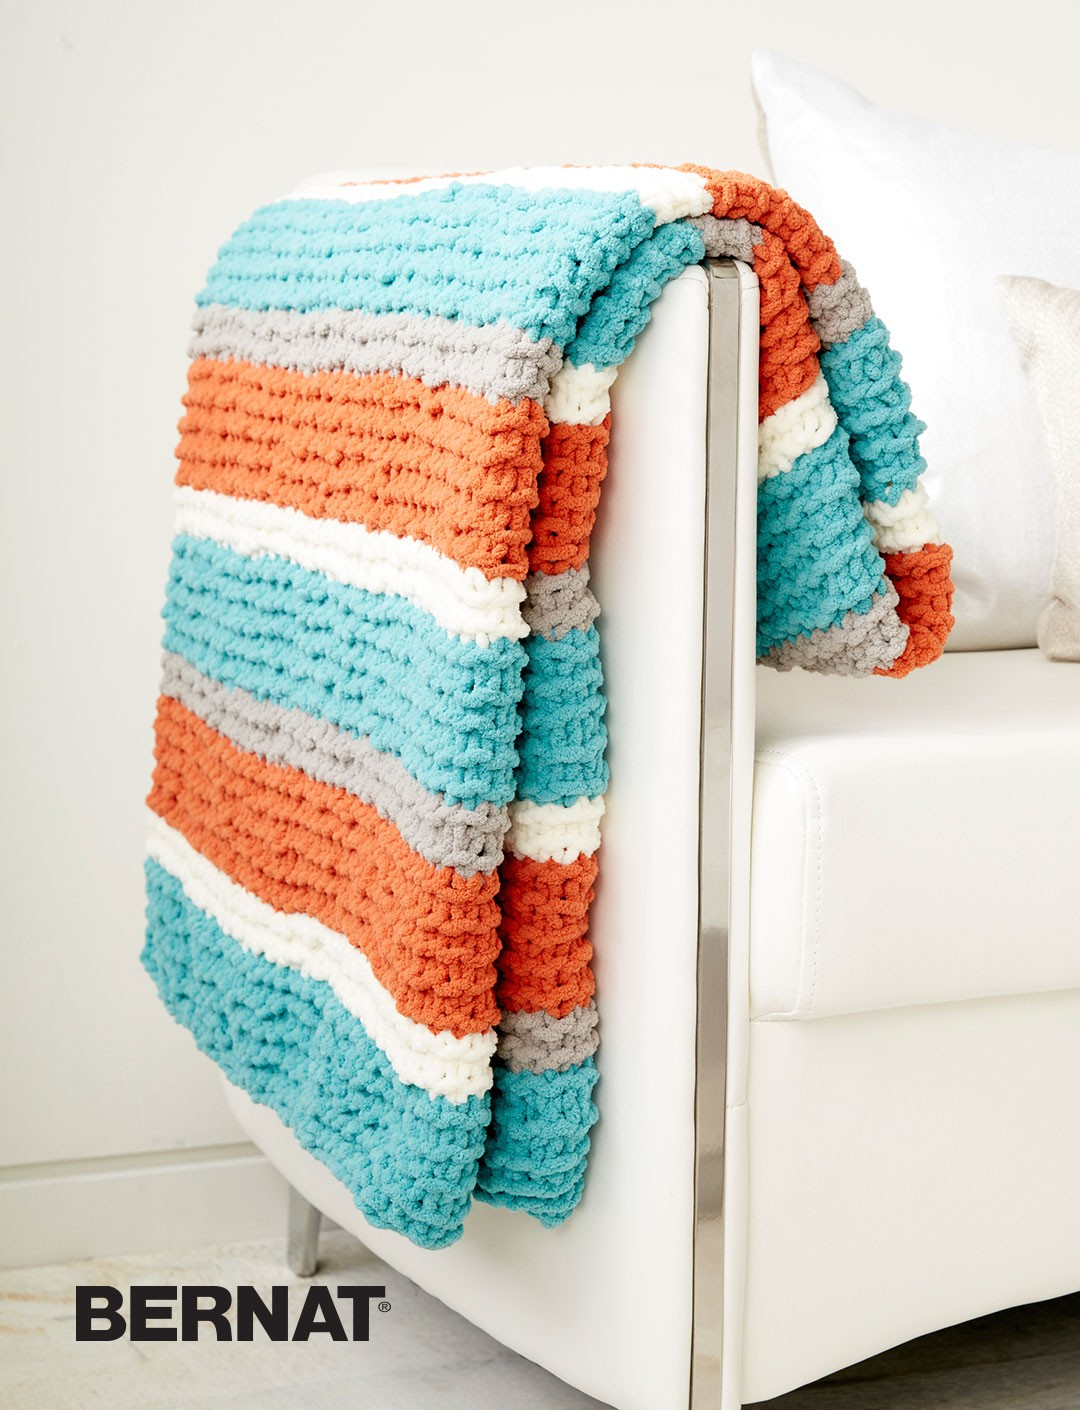 Bernat Baby Blanket Knitting Patterns : Bernat Get Fresh Throw, Knit Pattern Yarnspirations